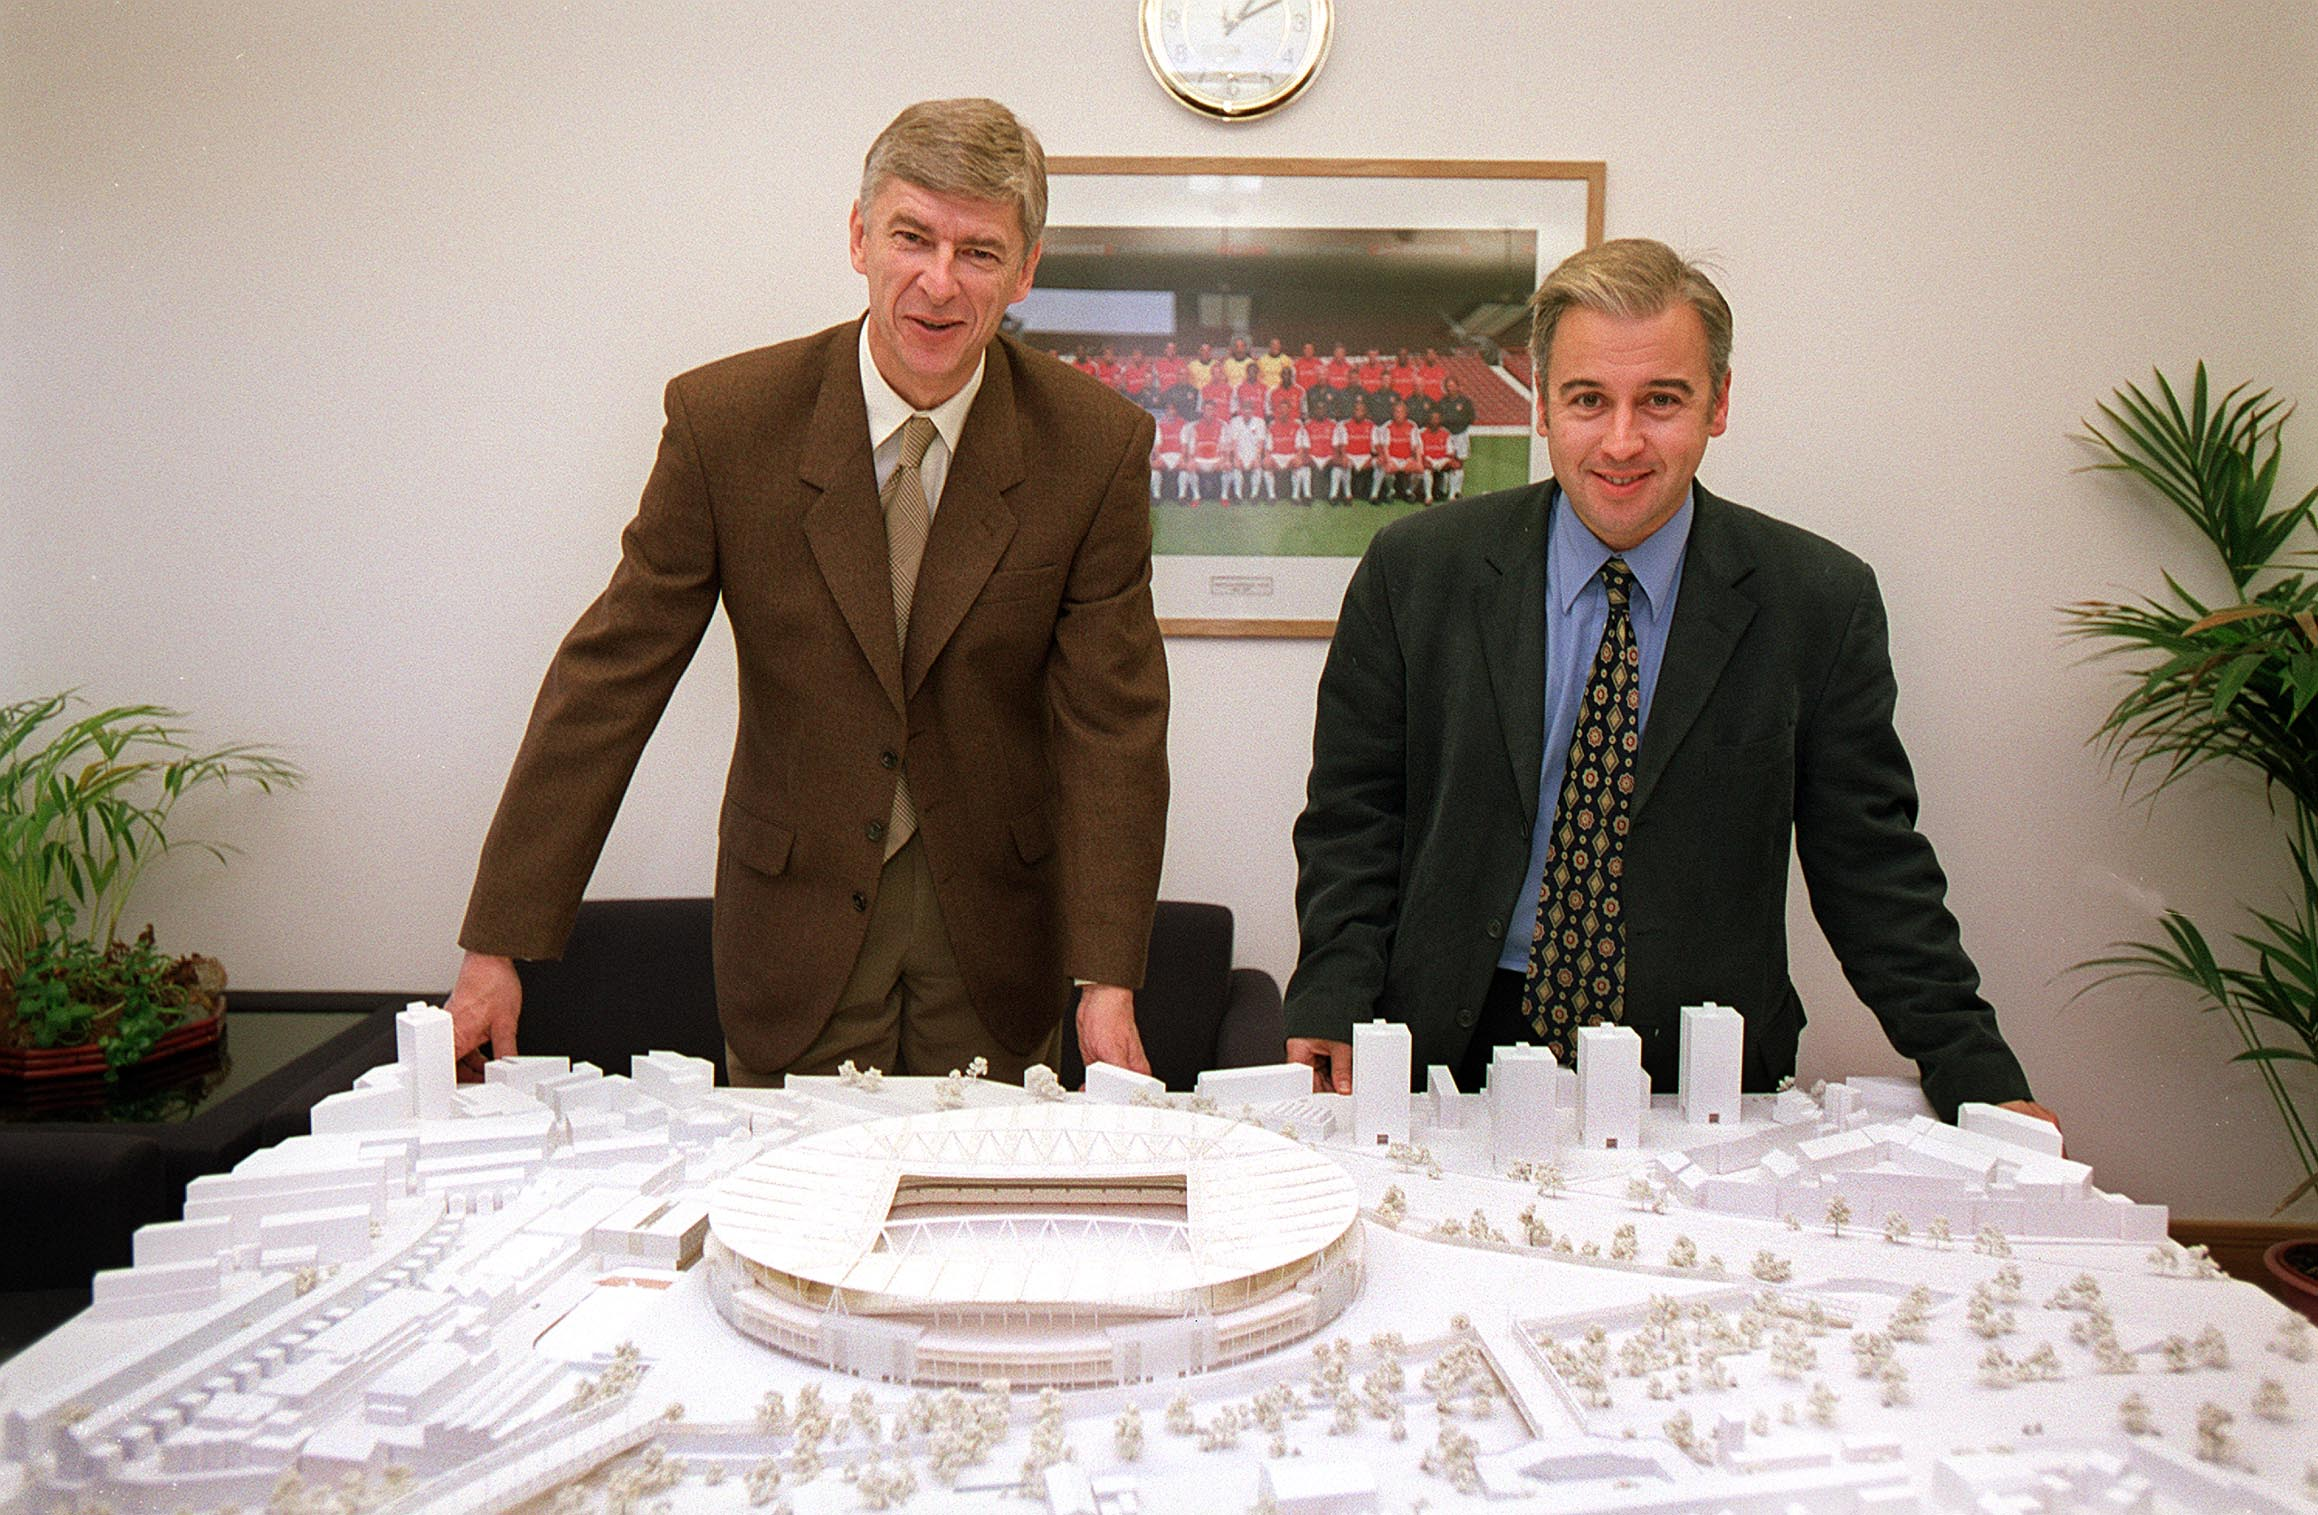 As a reporter on the local Islington paper with a model of the soon-to-be-built Emirates Stadium